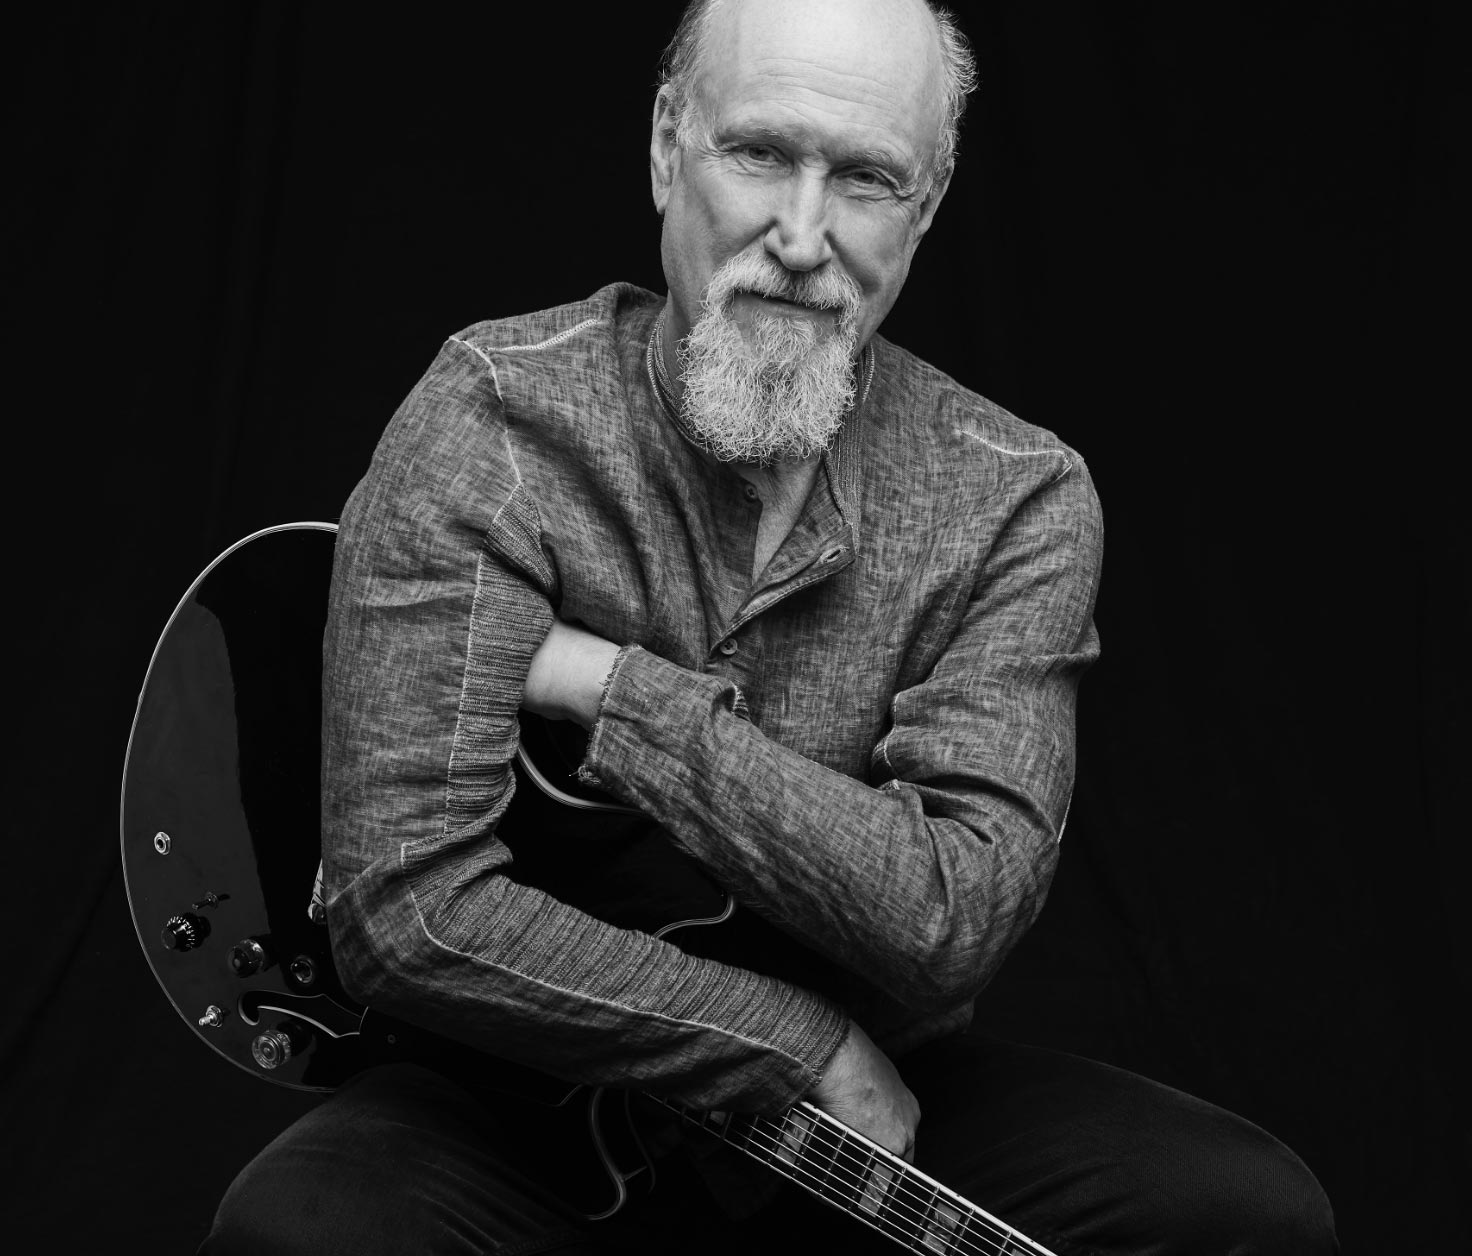 Smiling john Scofield with his guitar in arms